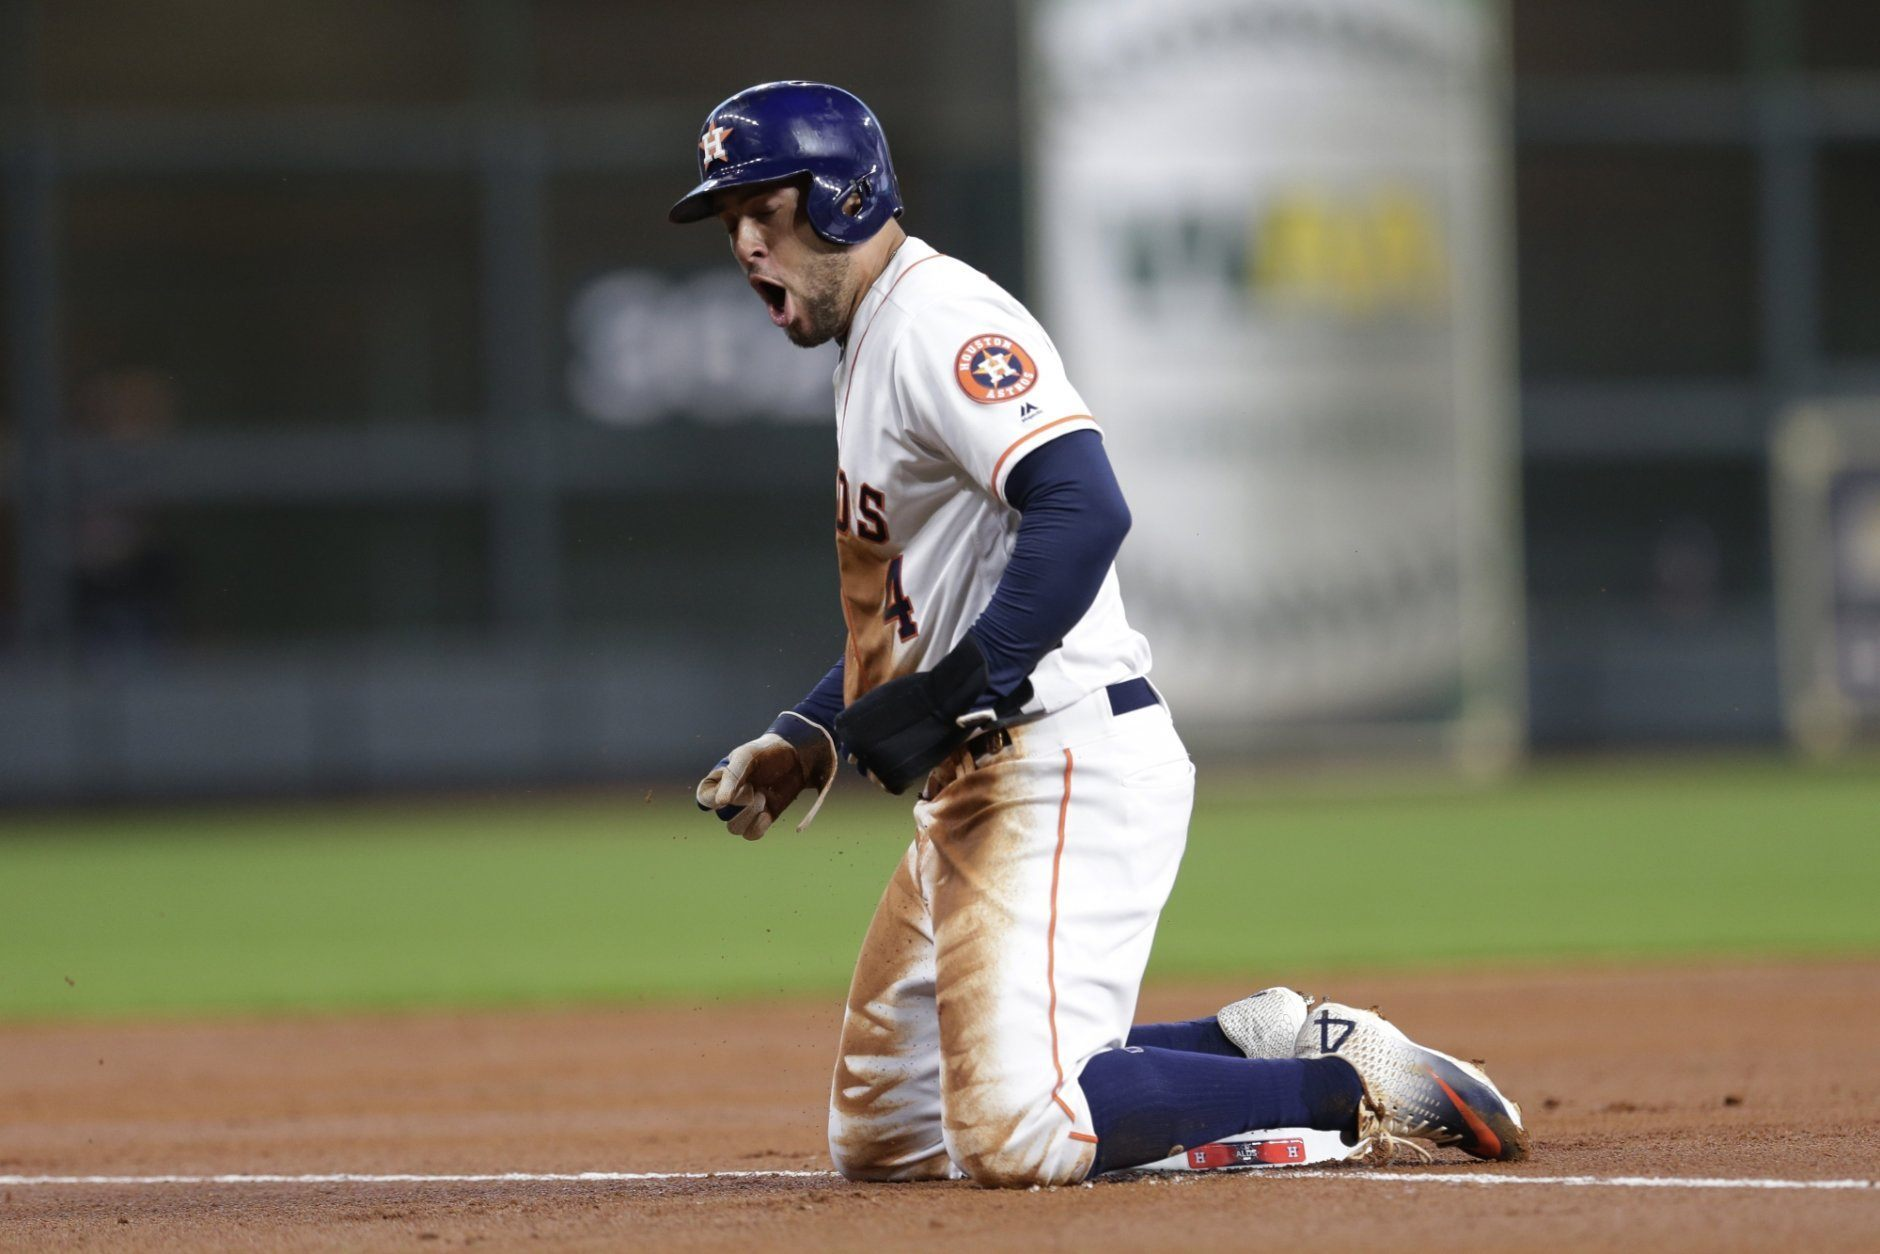 <p><strong>Dave Preston, sports anchor</strong></p> <p>World Series Prediction: Astros in six games</p> <p>World Series MVP: George Springer</p> <p>Bold Prediction: There will be two rainouts this weekend in D.C.</p>